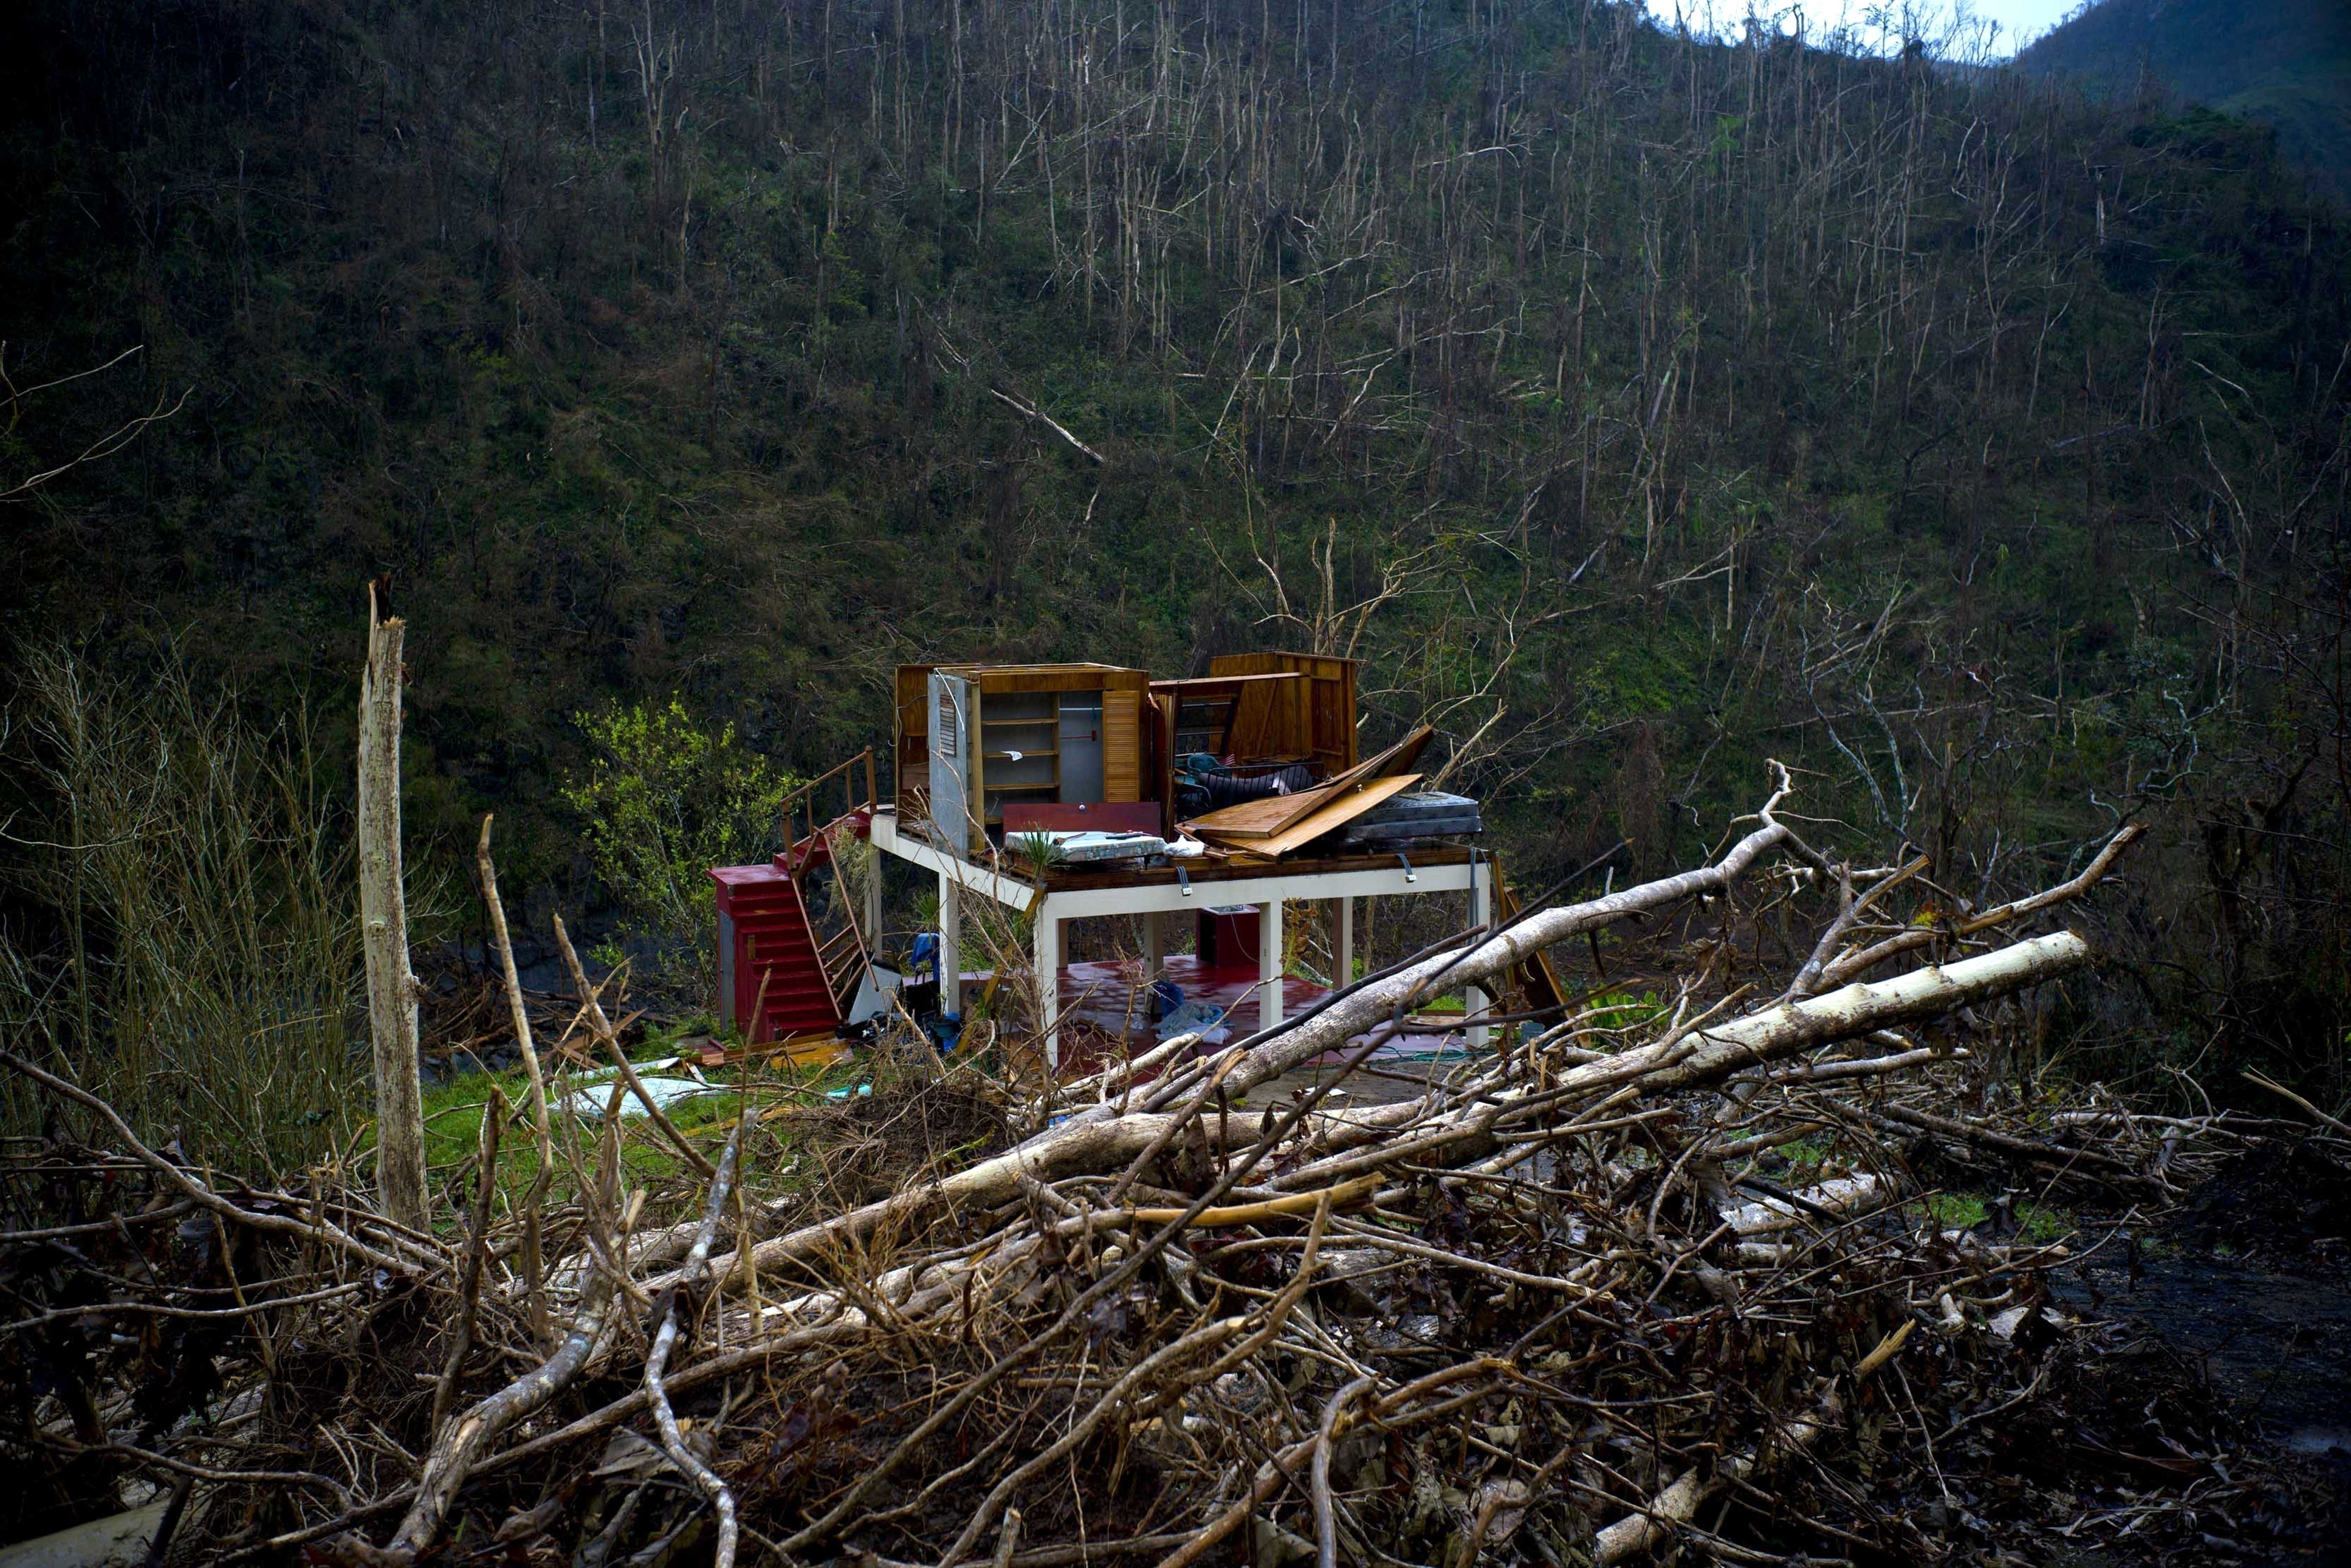 FILE - The foundation of a heavily damaged house stands amid broken trees in the mountains after the passing of Hurricane Maria in the San Lorenzo neighborhood of Morovis, Puerto Rico, Sept. 30, 2017. Environmental groups and volunteers are gathering